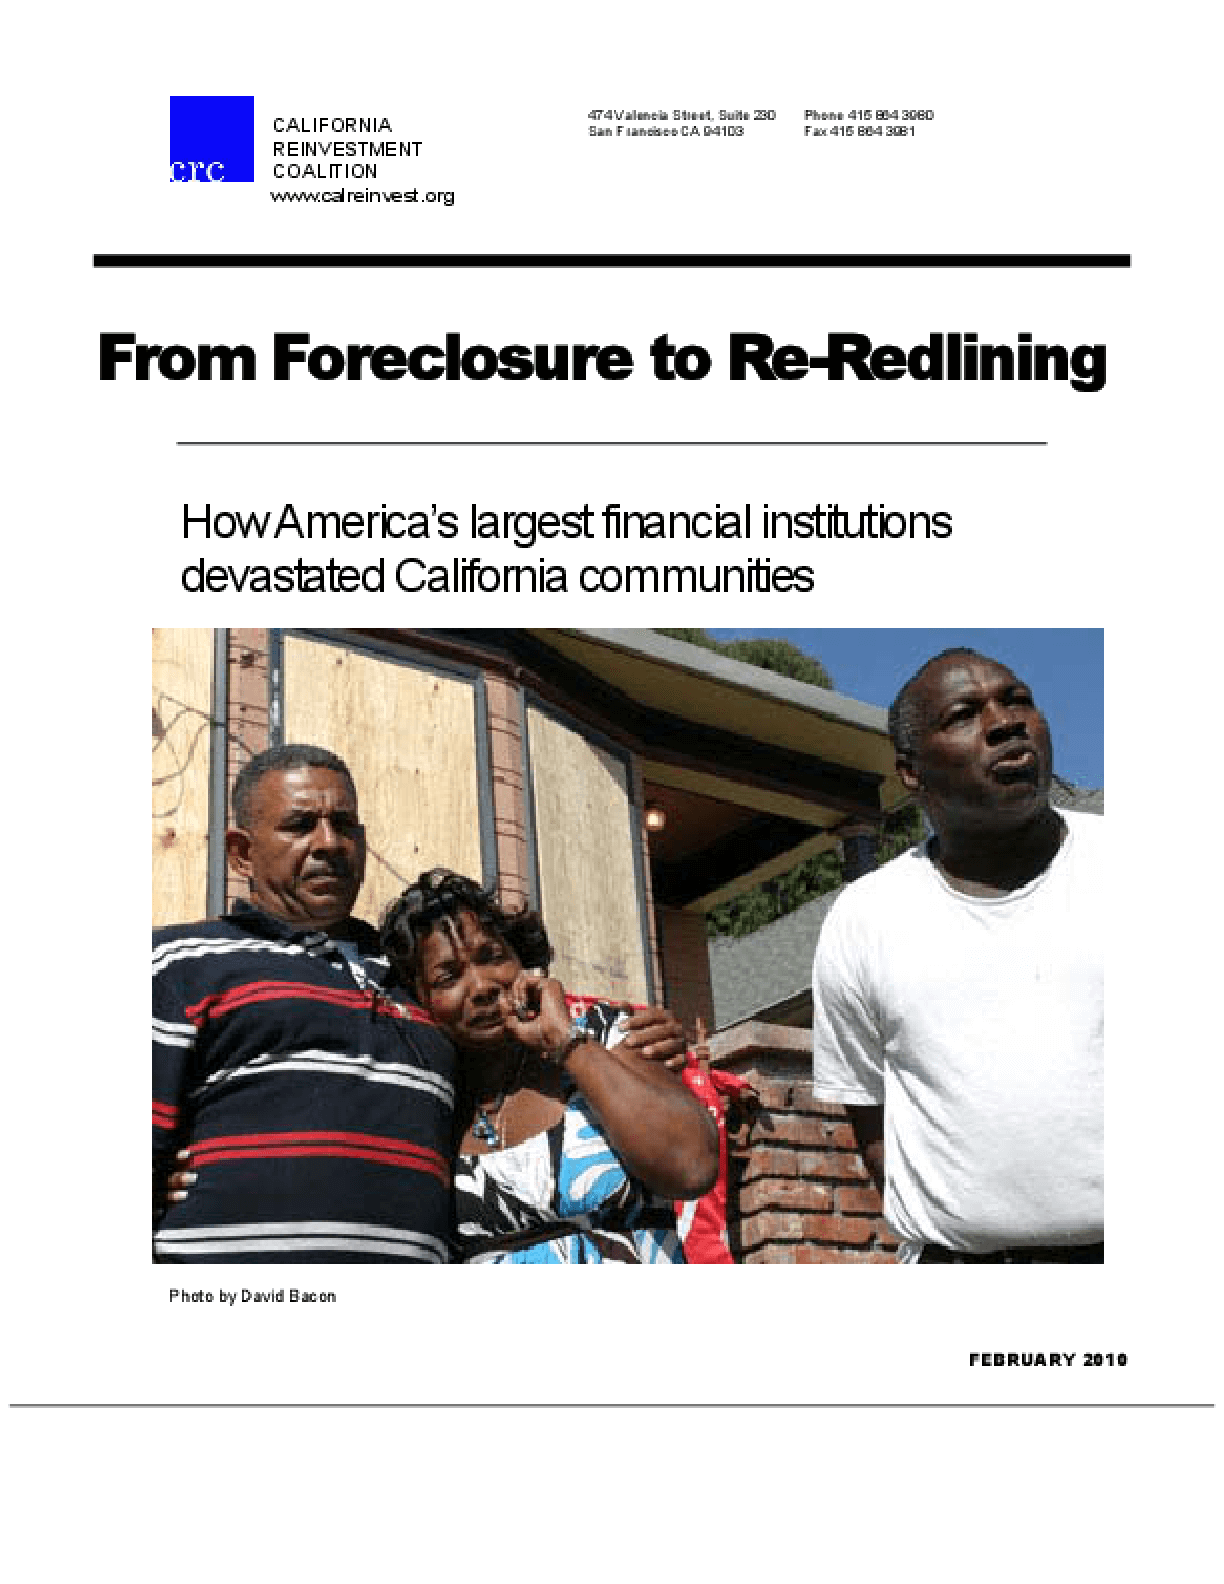 From Foreclosure to Redlining: How America's Largest Financial Institutions Devastated California Communities